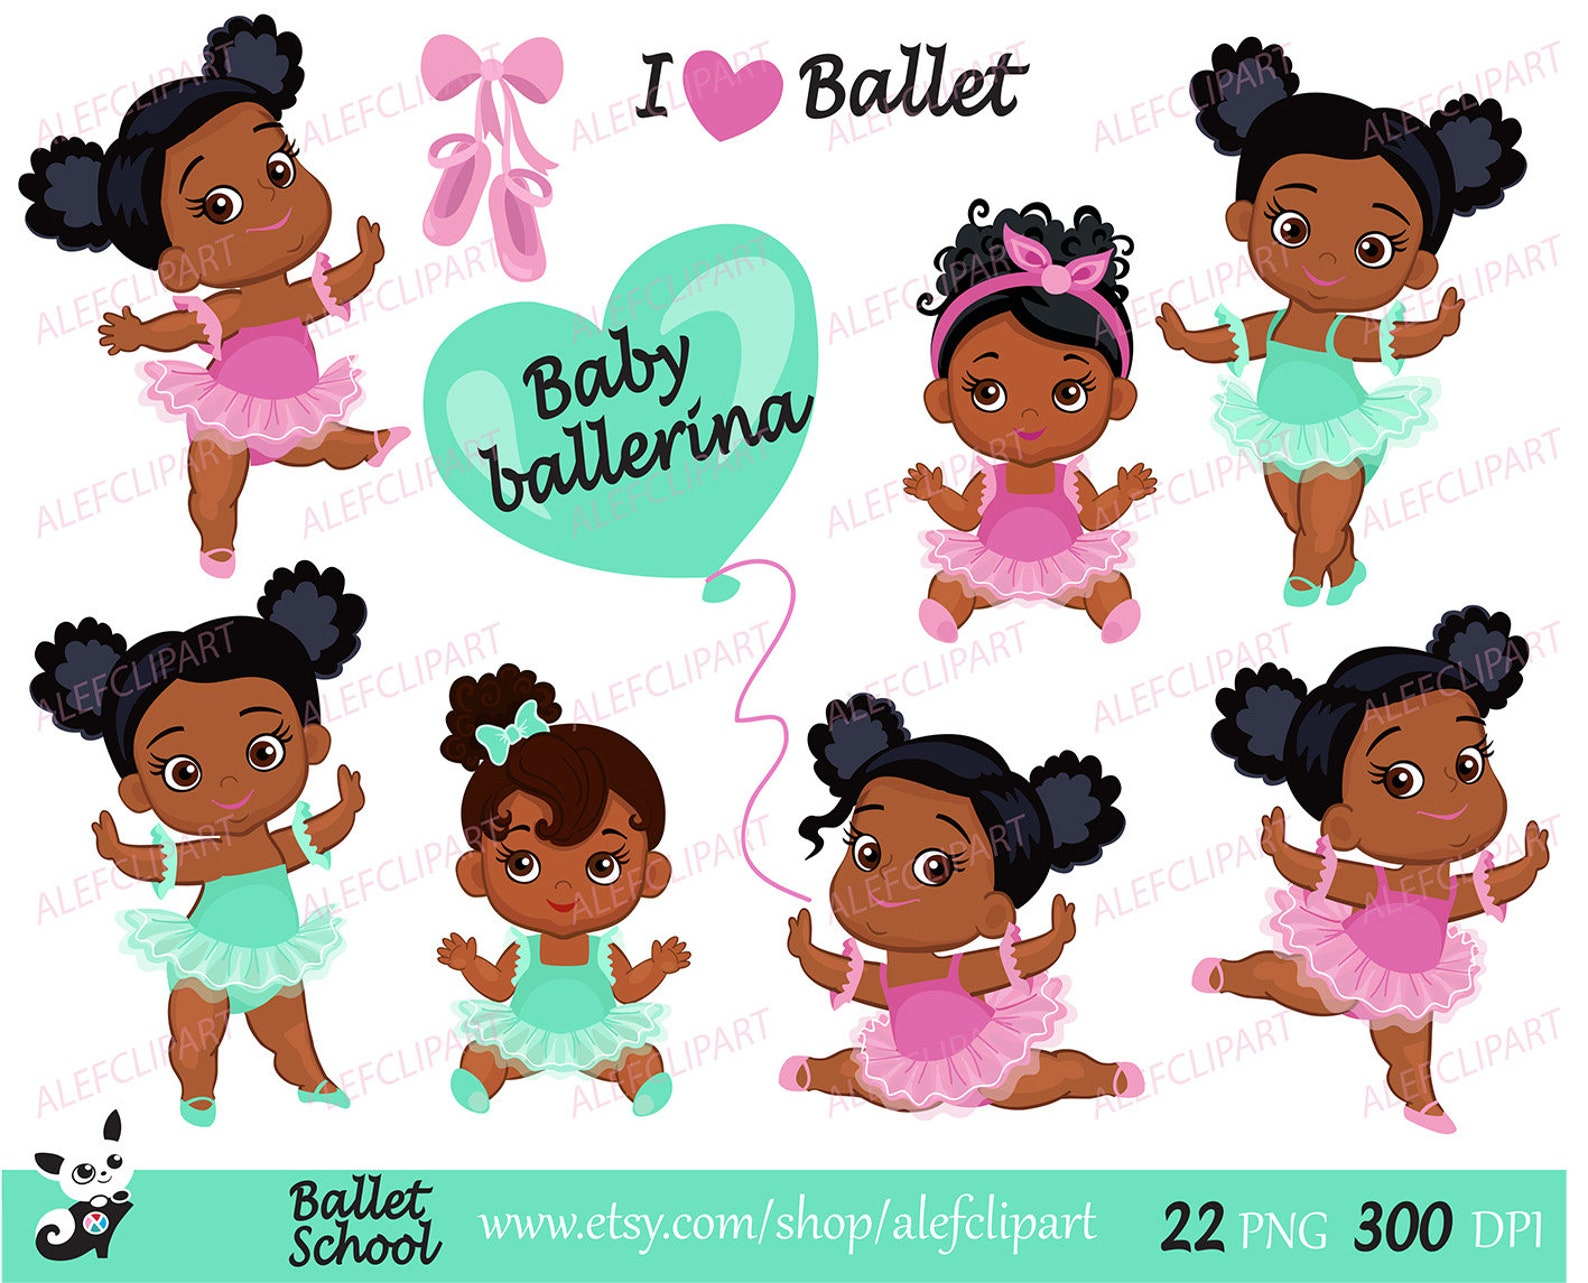 ballet - baby ballerina clipart, ballet clipart, african american baby ballerinas.pink and mint.for personal and commercial use.